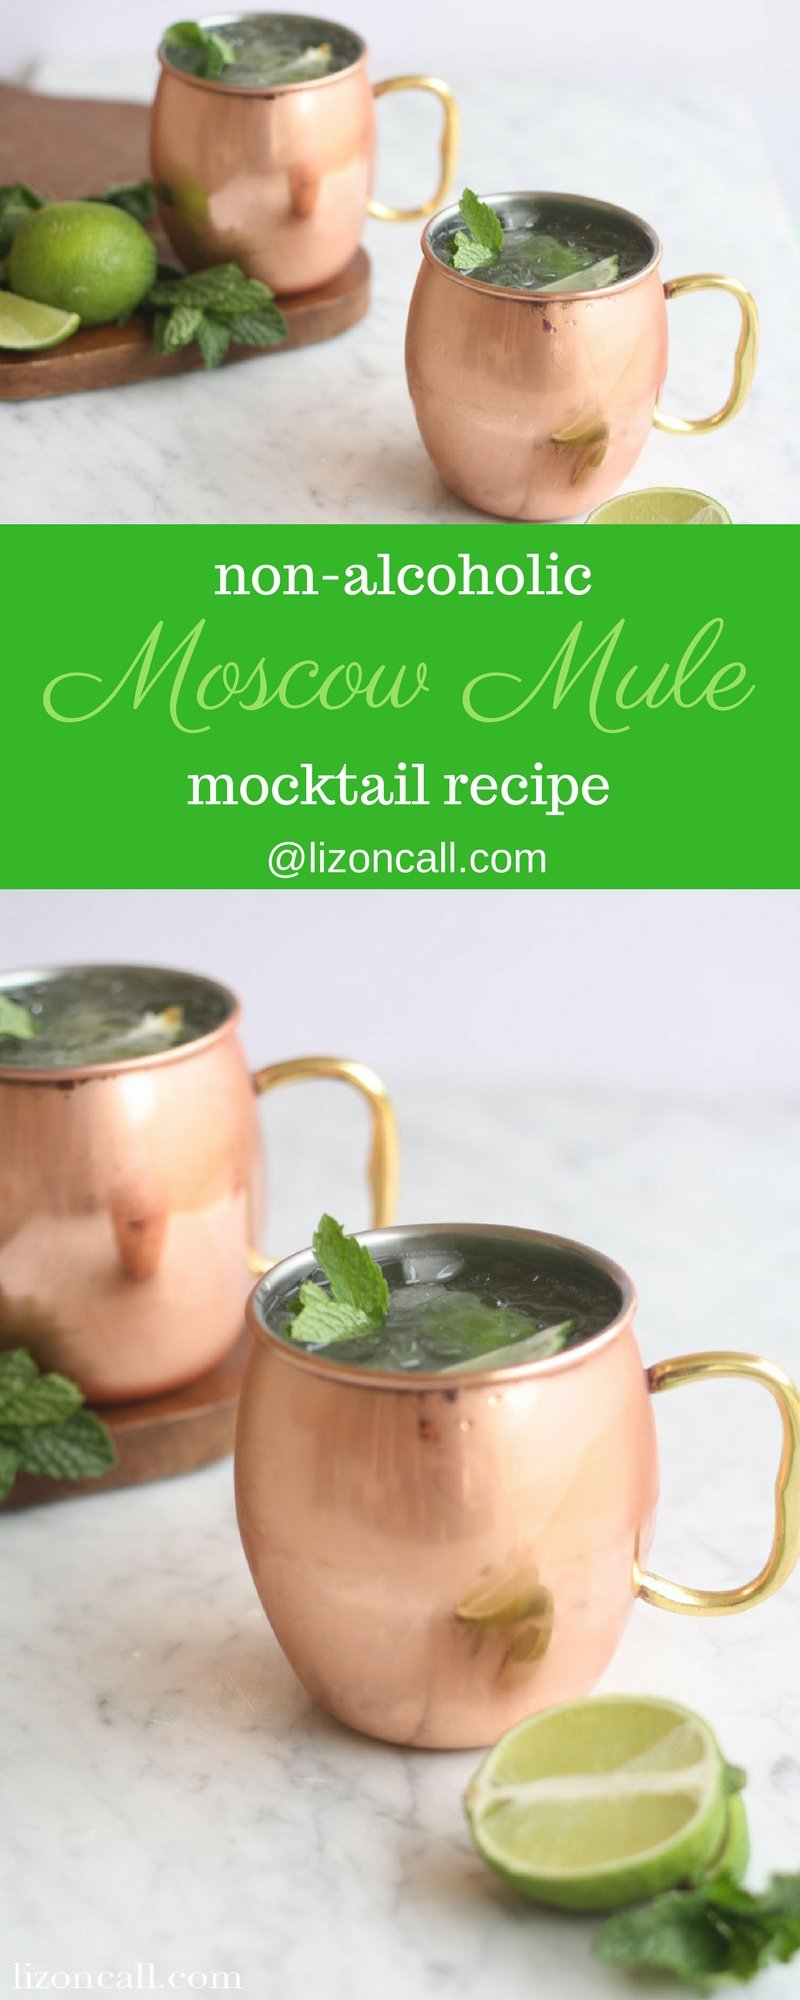 This non alcoholic moscow mule mockatil recipe is cool, crisp, refreshing and a bit spicy, with just a bite of ginger. It's the perfect mocktail to mix up any night of the week. #moscowmule #mocktail #nonalcoholicmoscowmule